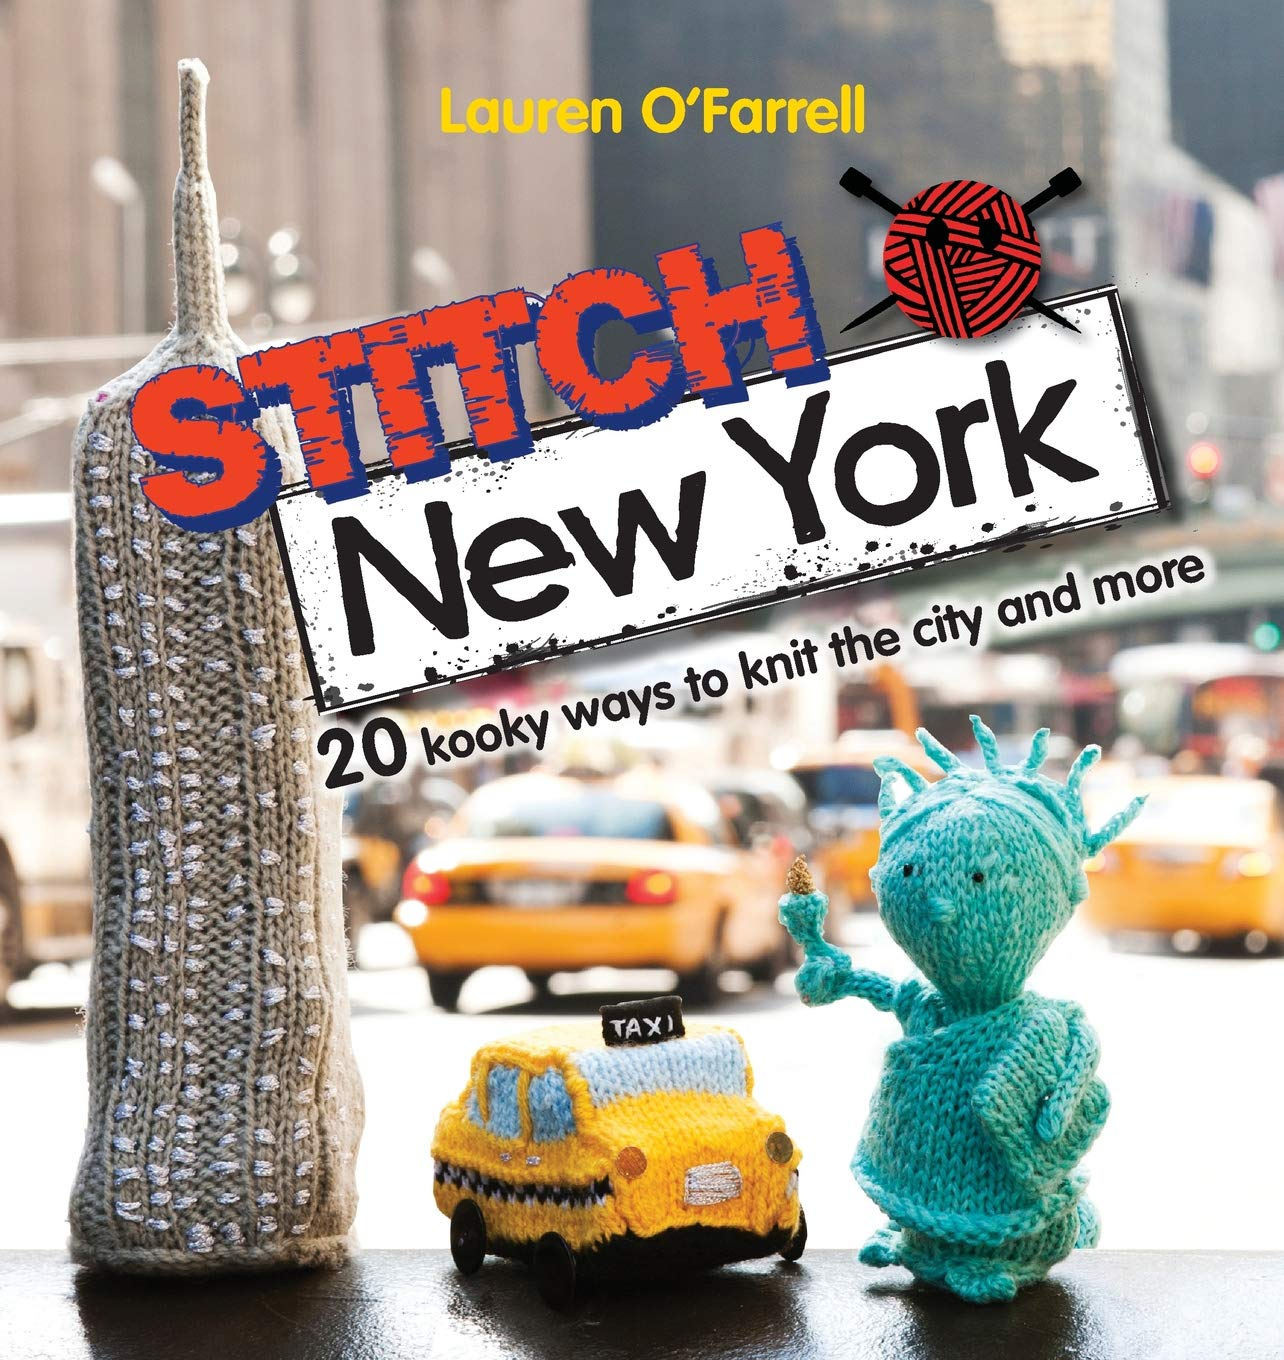 Stitch New York Over 20 Kooky Ways To Knit The City And More Lauren O Farrell